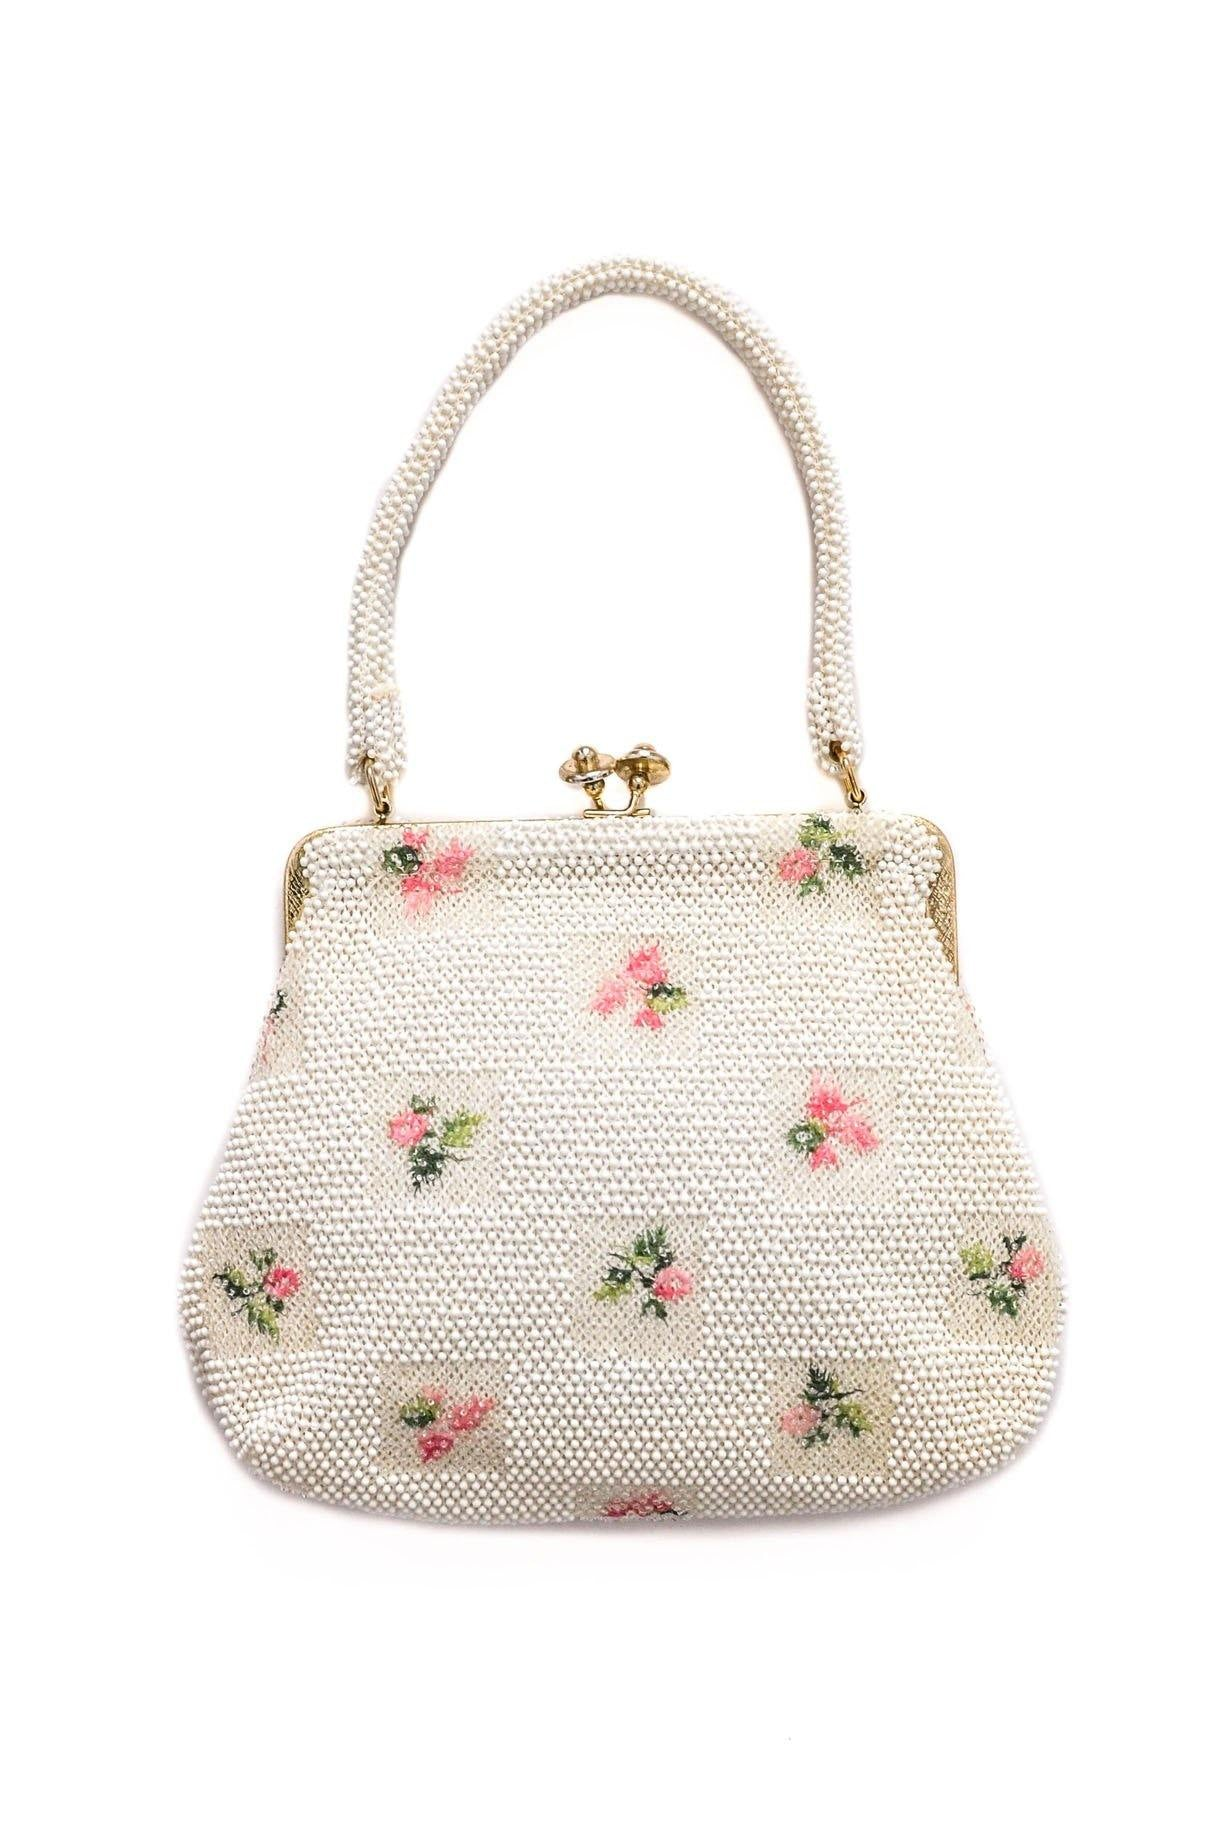 Vintage beaded top handle bag from Sweet & Spark.